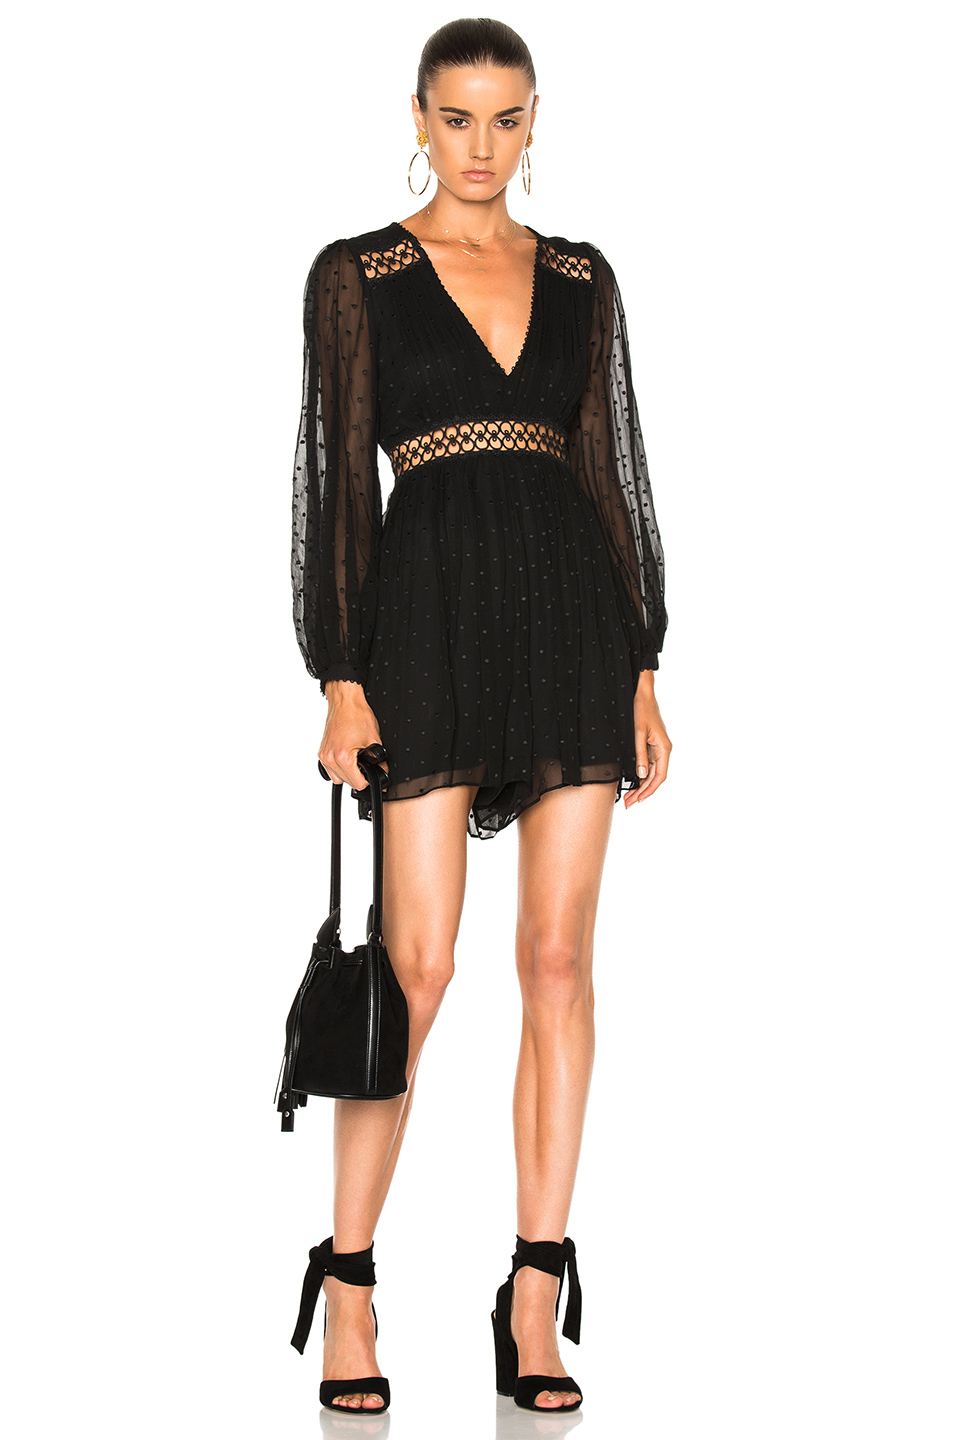 Zimmermann for FWRD Bowerbird Empire Playsuit Romper in Black